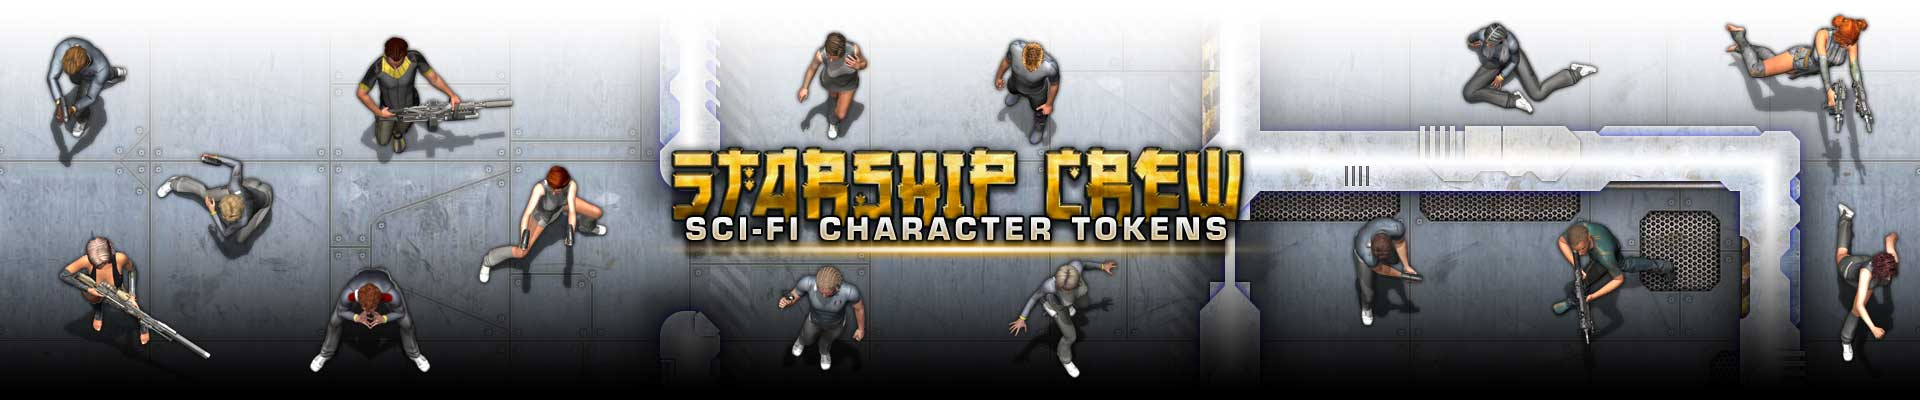 Starship Crew – Sci-fi Character Tokens